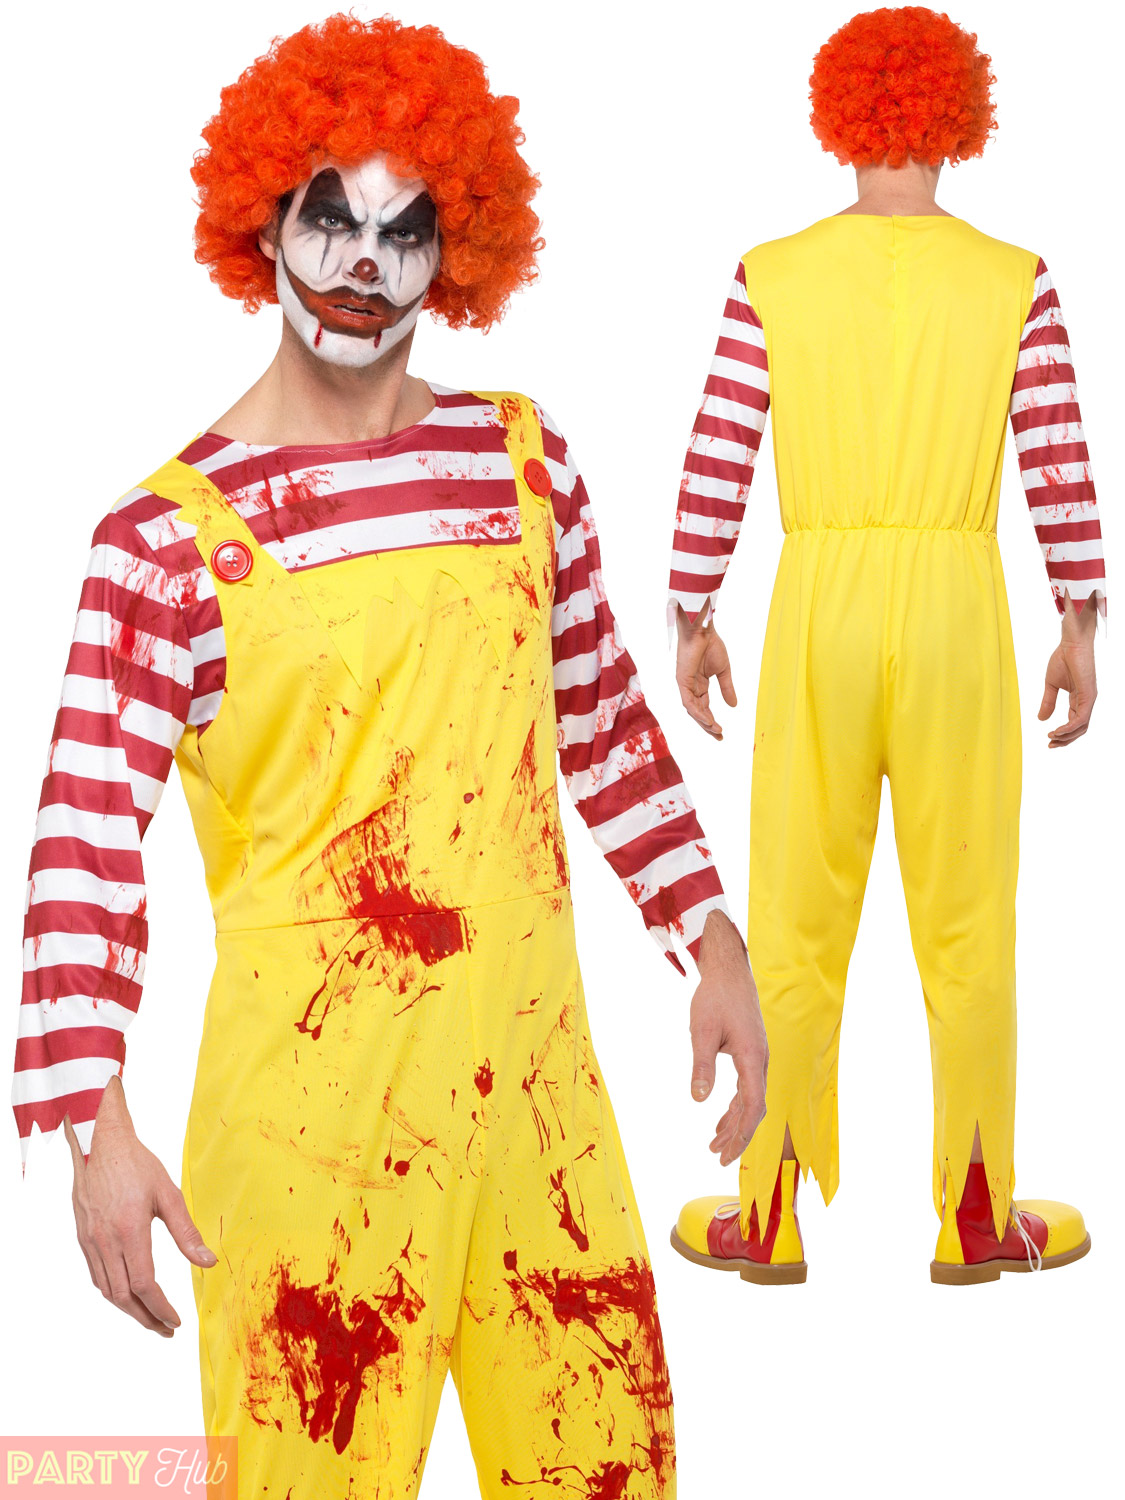 Halloween Clown.Details About Men Creepy Killer Clown Costume Halloween Scary Horror Ronald Yellow Fancy Dress